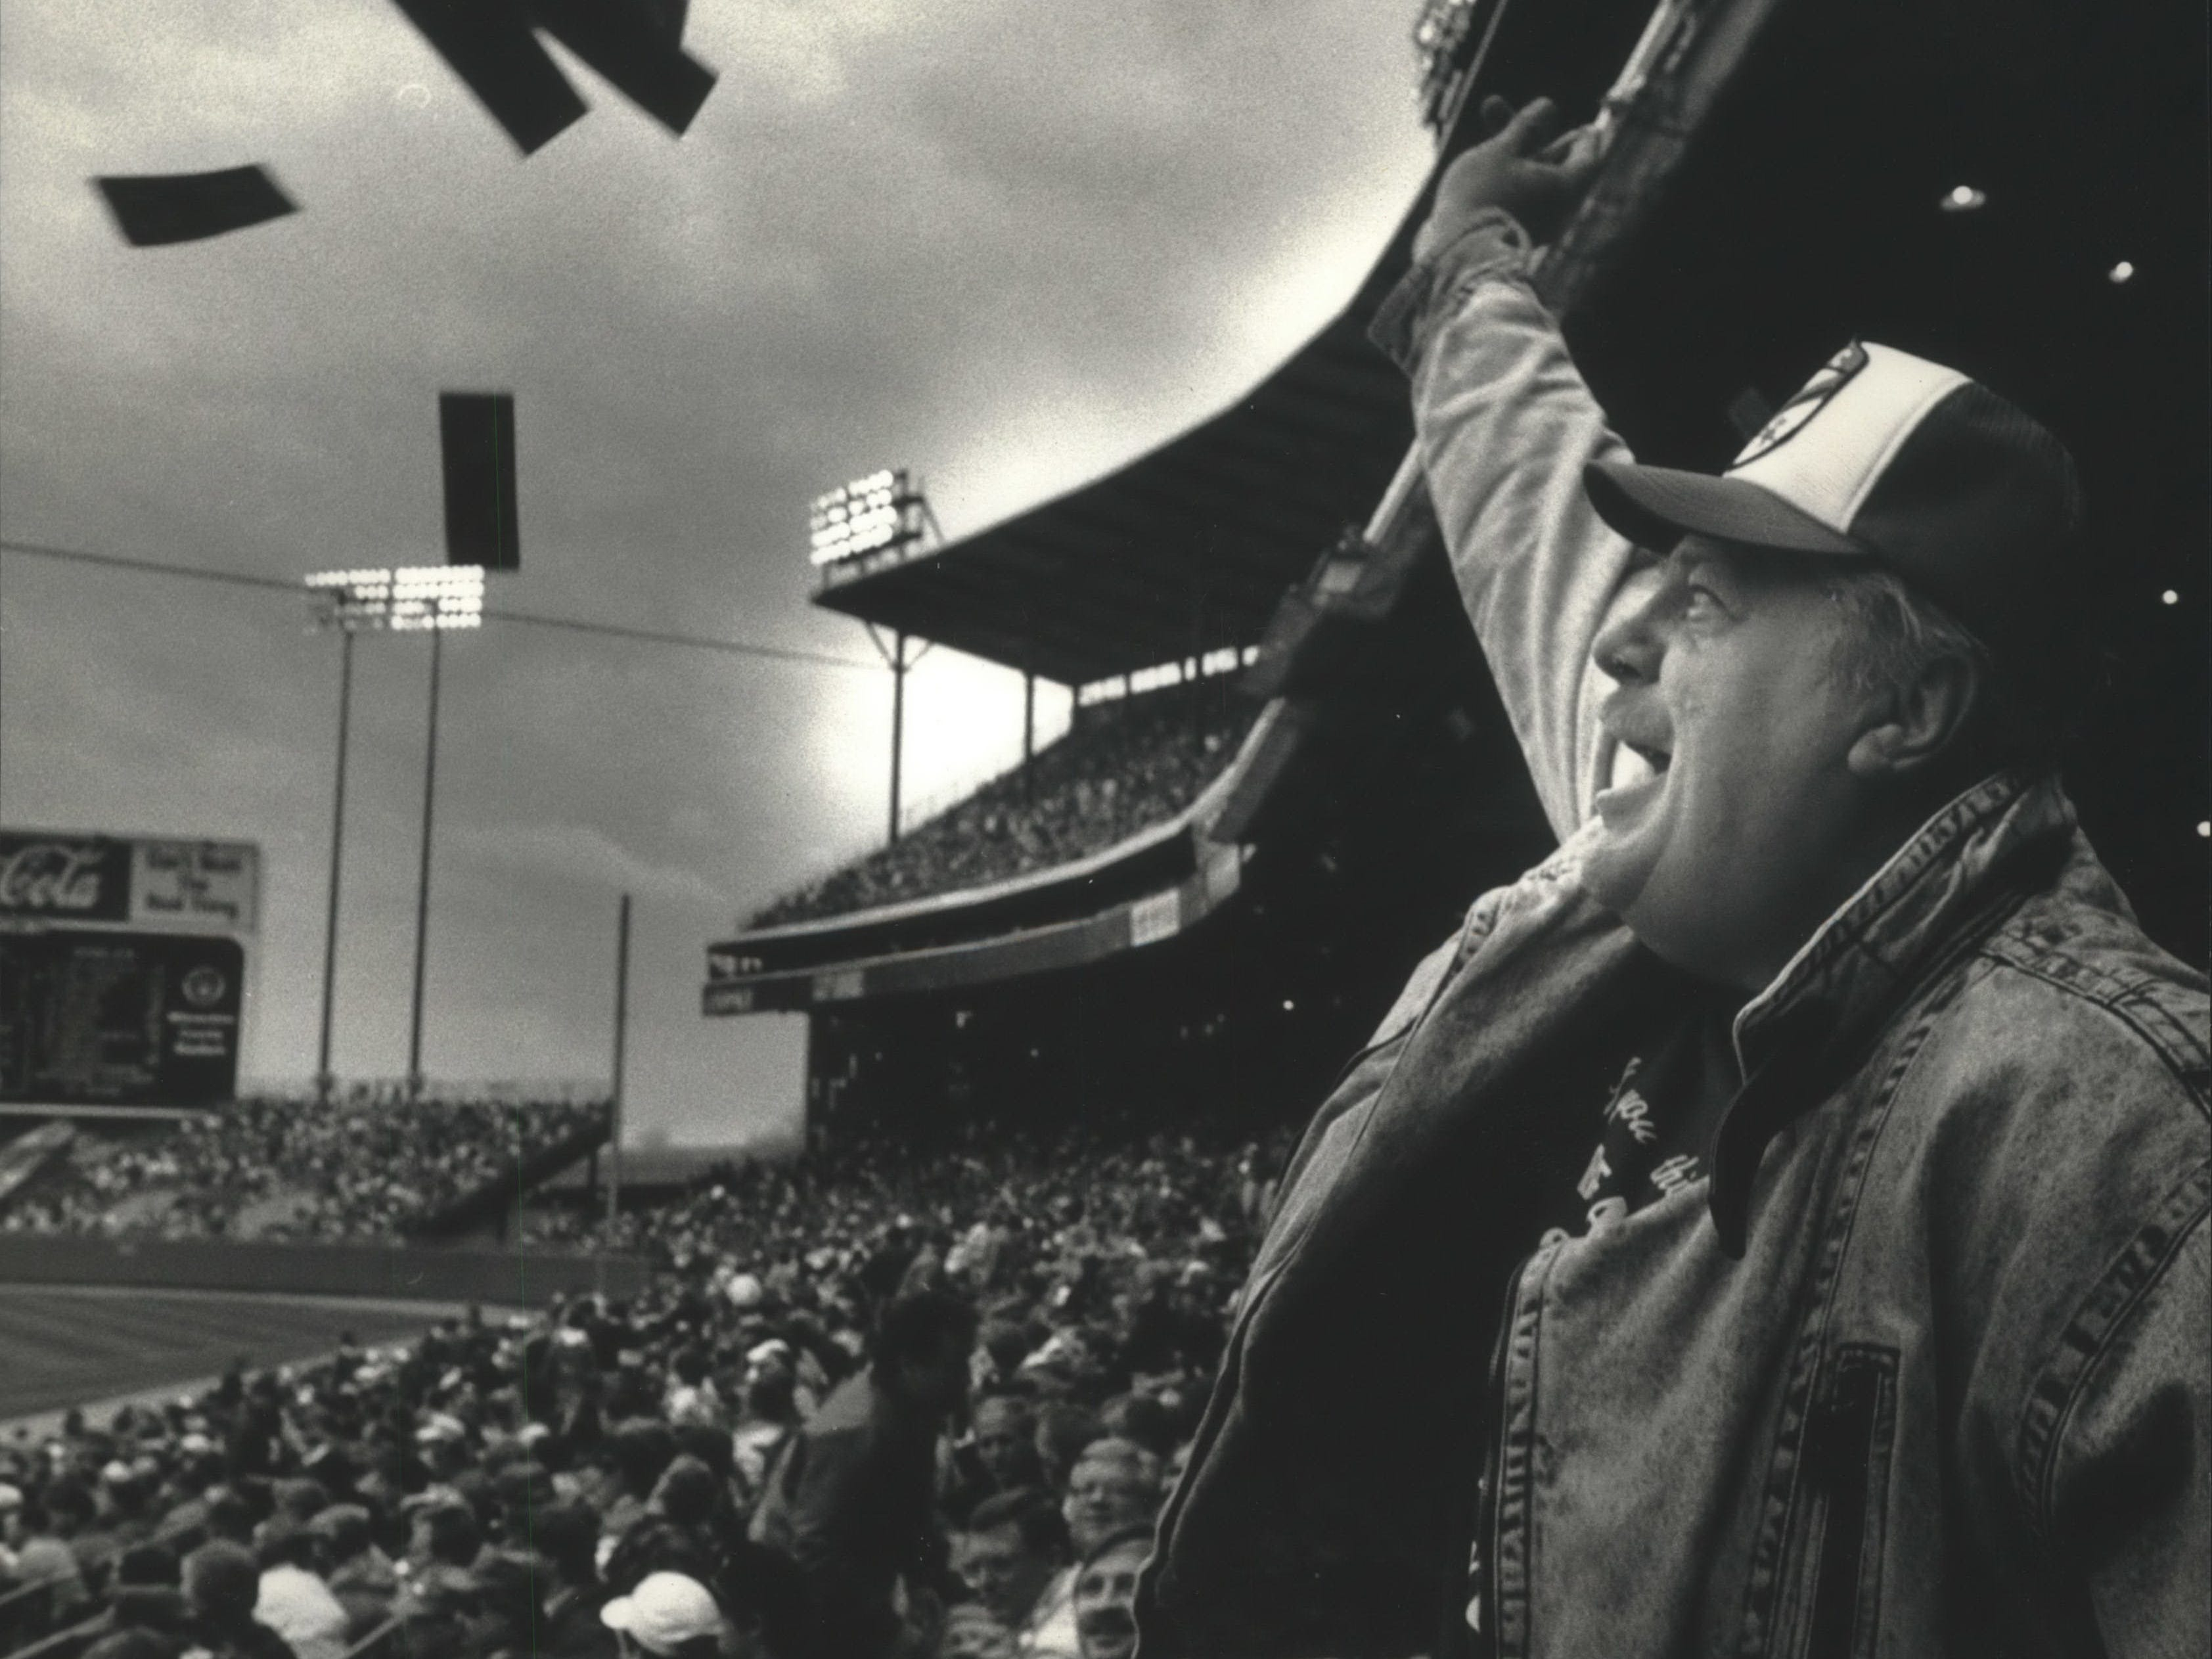 Meilahn Mystandke of Ripon throws fake money around at the Milwaukee Brewers' 1991 home opener to protest high baseball salaries on April 15, 1991. The Brewers lost to the Baltimore Orioles, 7-2. This photo was published in the April 17, 1991, Milwaukee Journal.